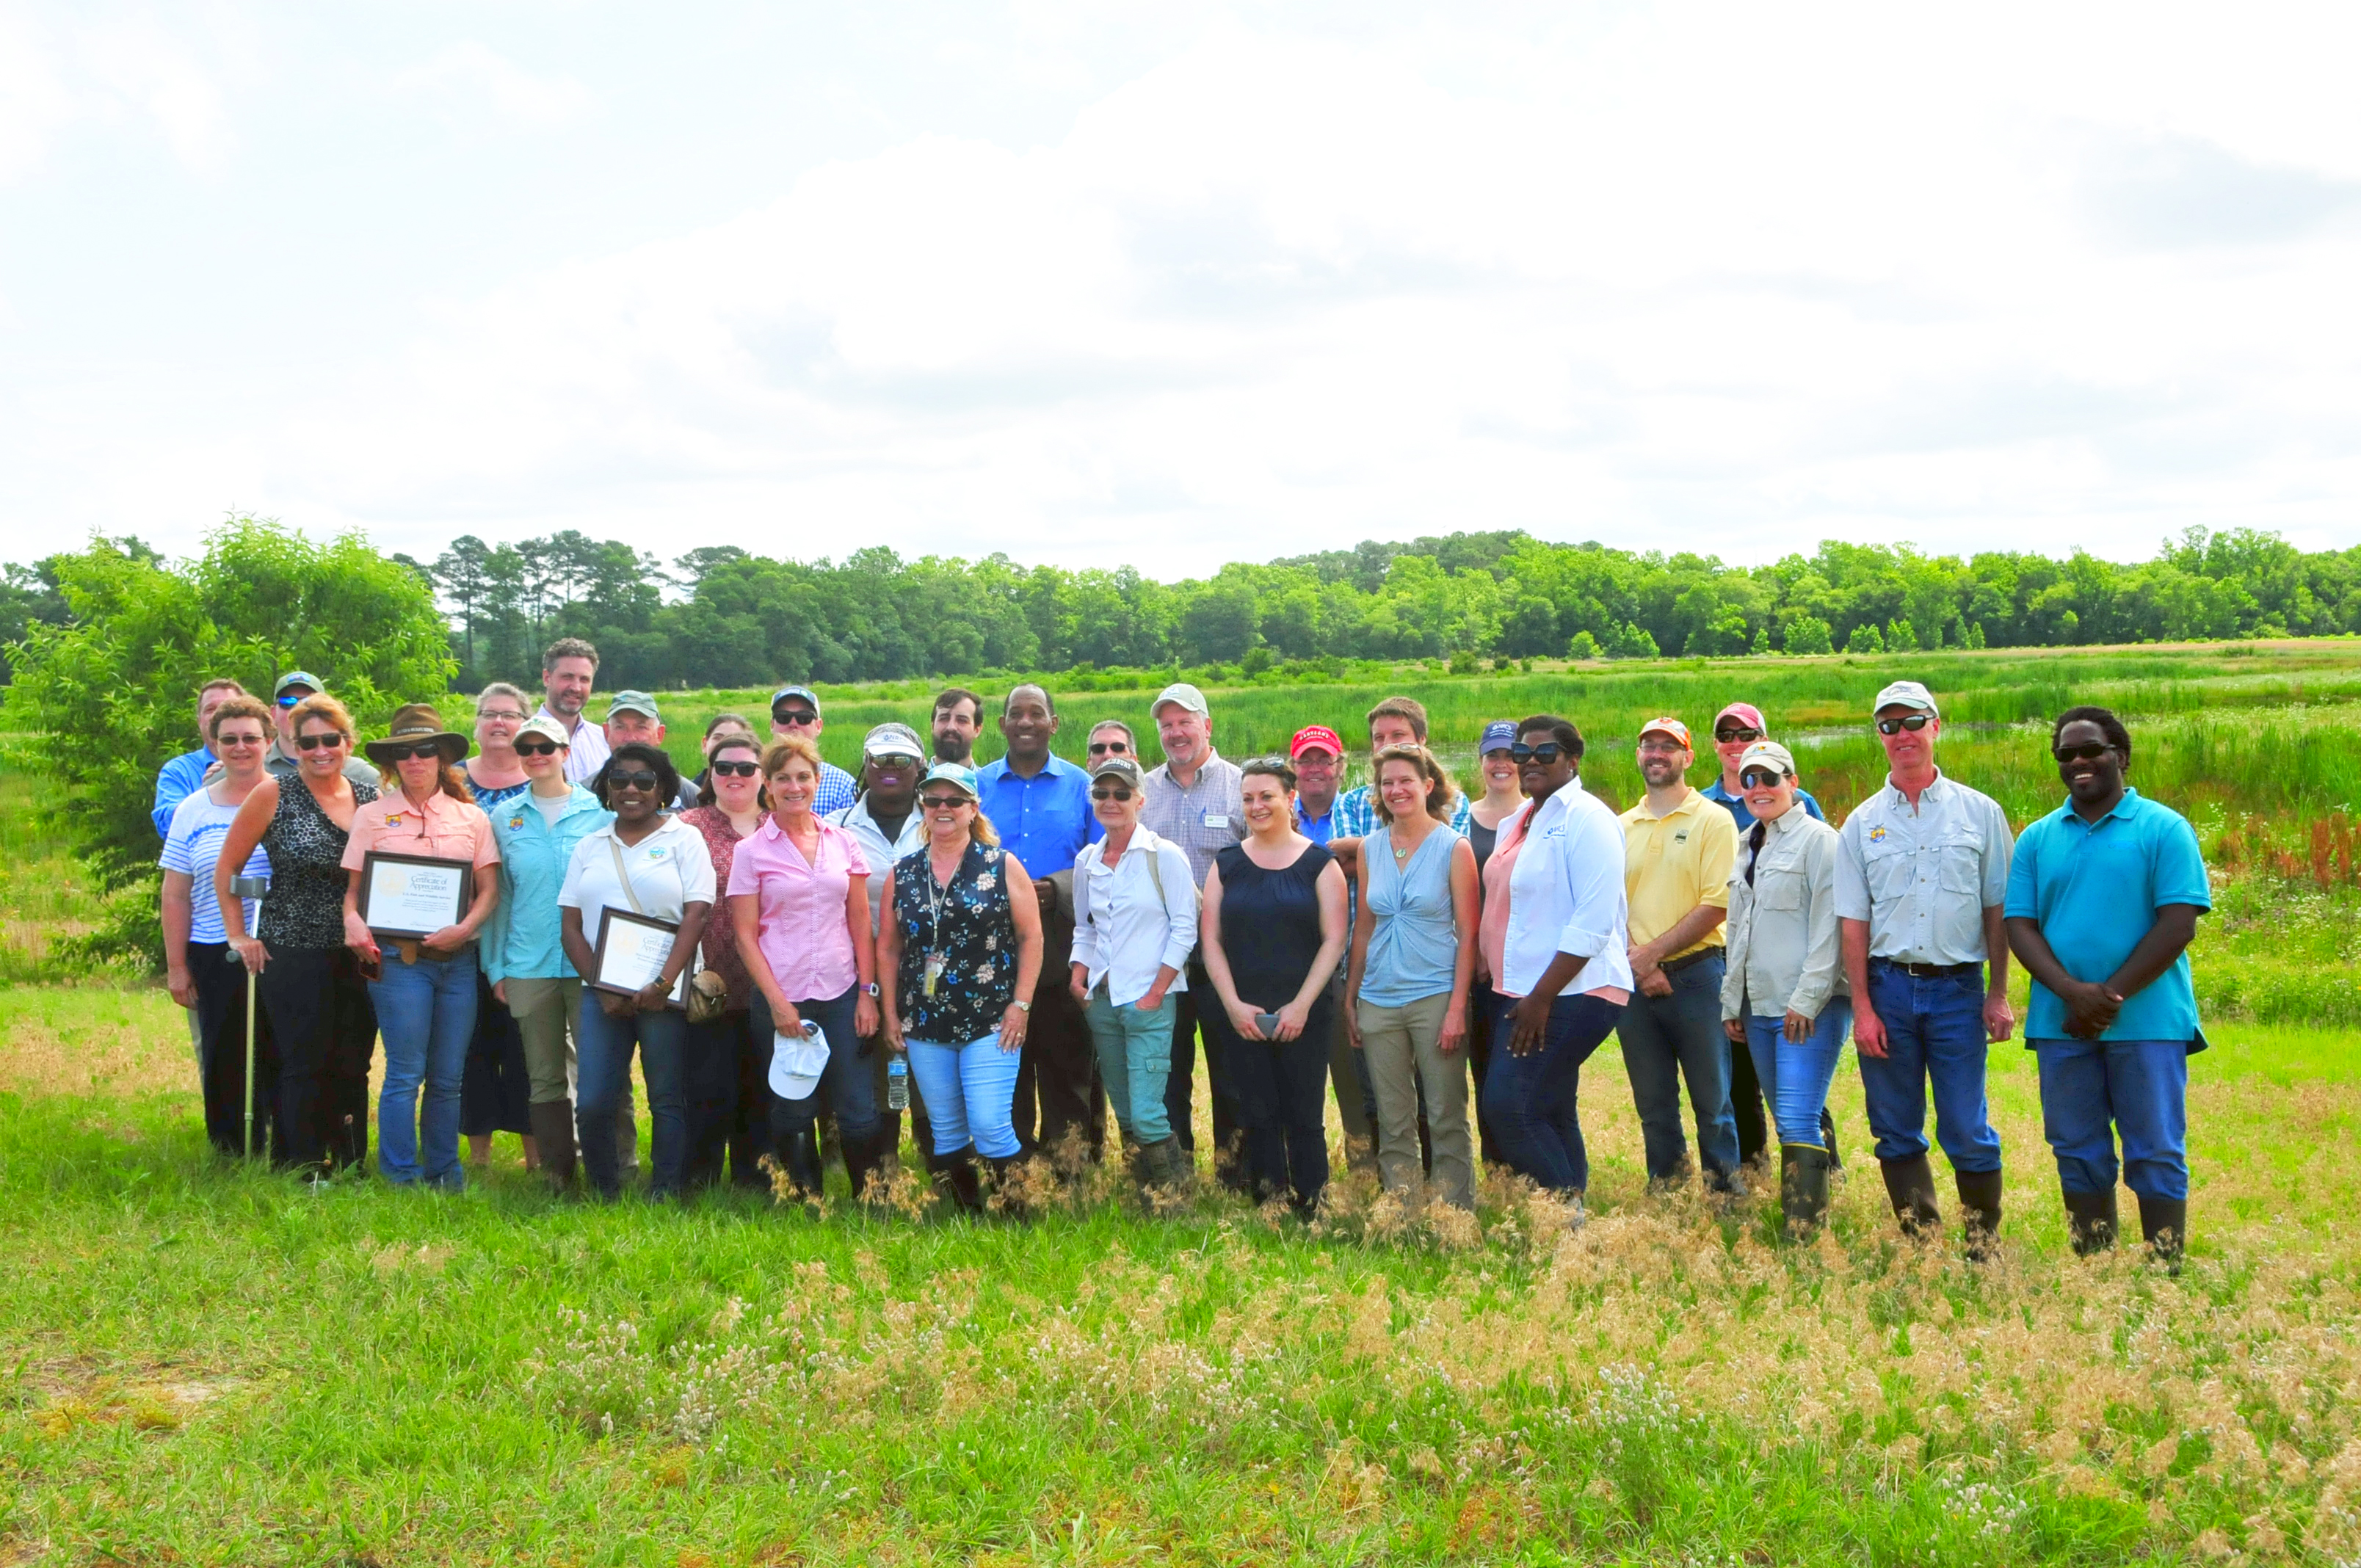 Maryland Natural Resources Conservation Service joined their partners to celebrate their 25th Anniversary for Easements on June 13. State Conservationist Terron Hillsman recognized various partners by presenting them with certificates of appreciation.